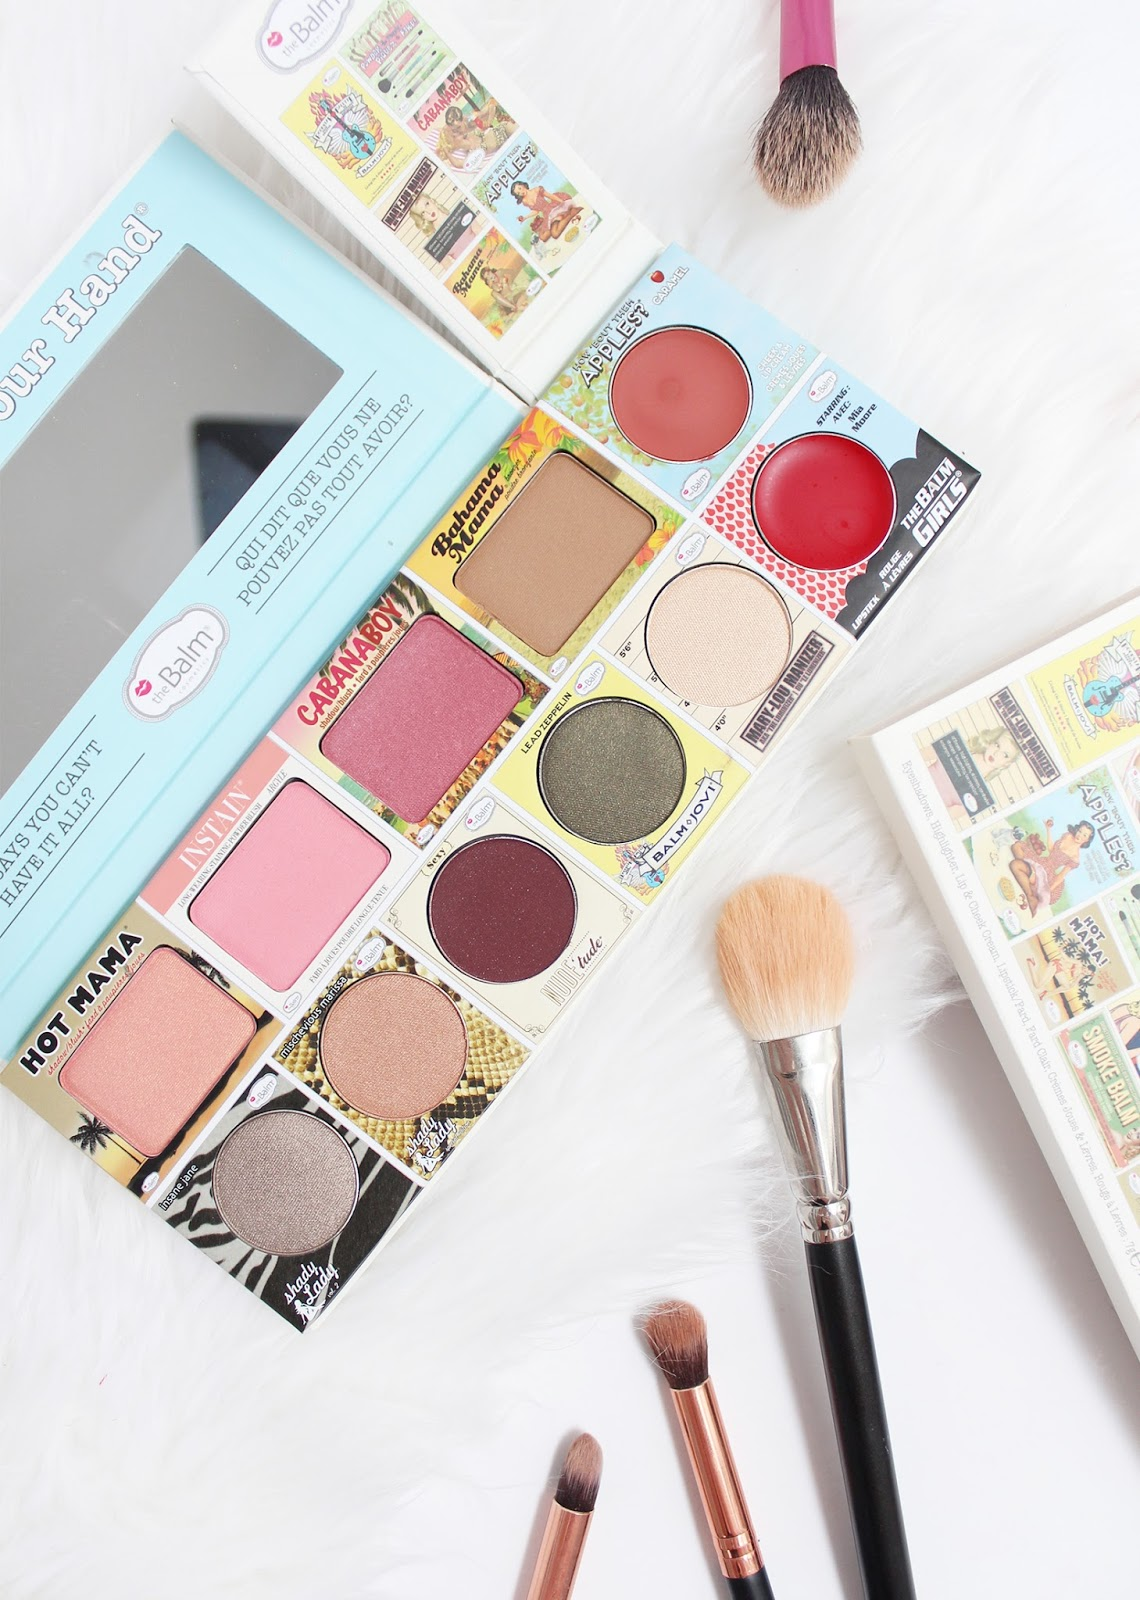 THEBALM | In The Balm of Your Hand - Greatest Hits Palette - Review + Swatches - CassandraMyee